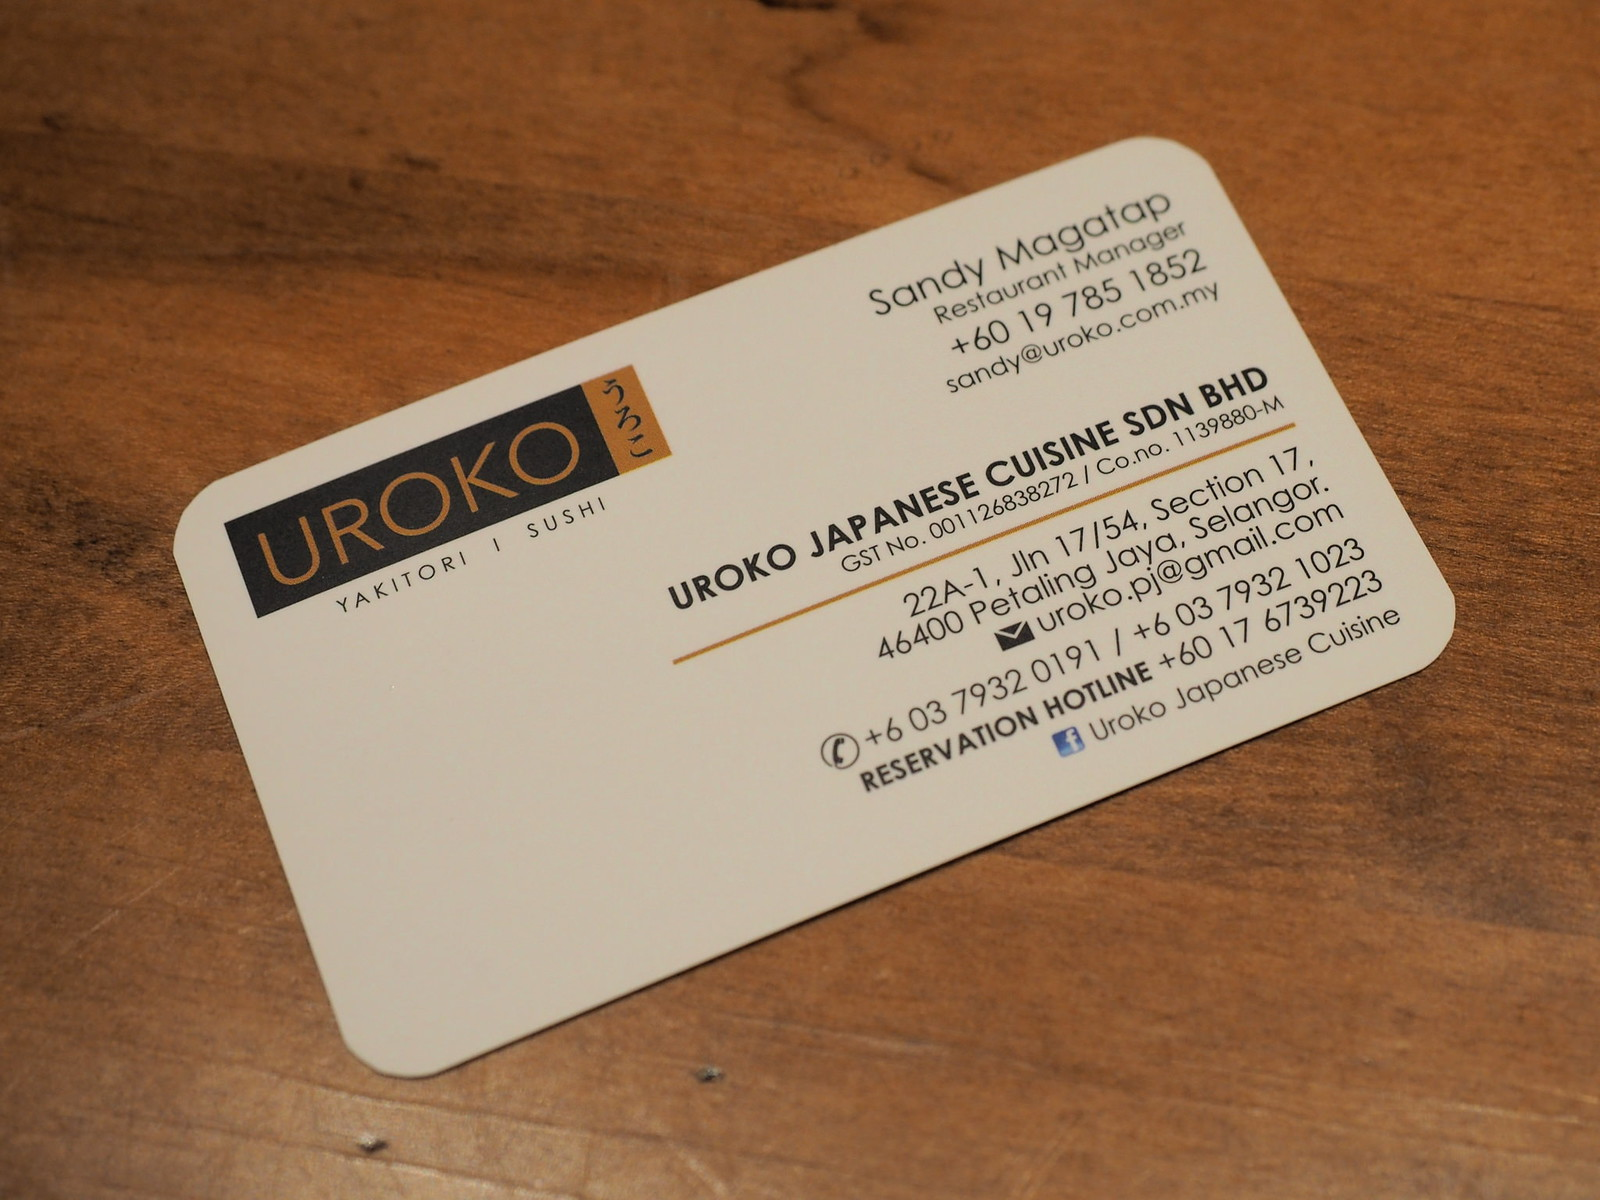 Uroko Japanese Cuisine's name card